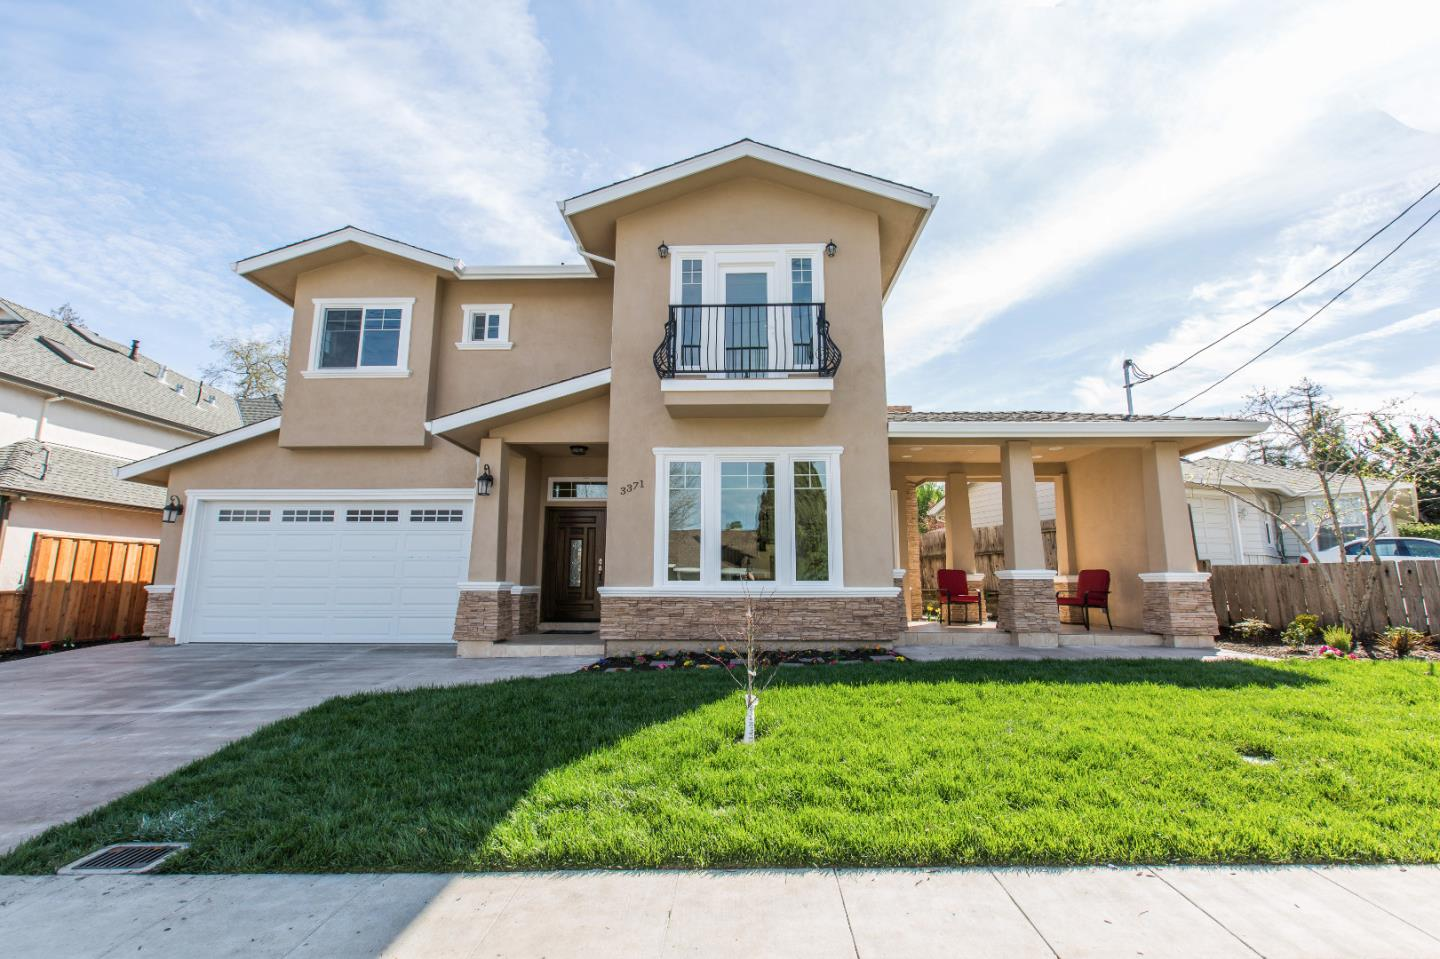 3371 Dover Rd, Redwood City, CA